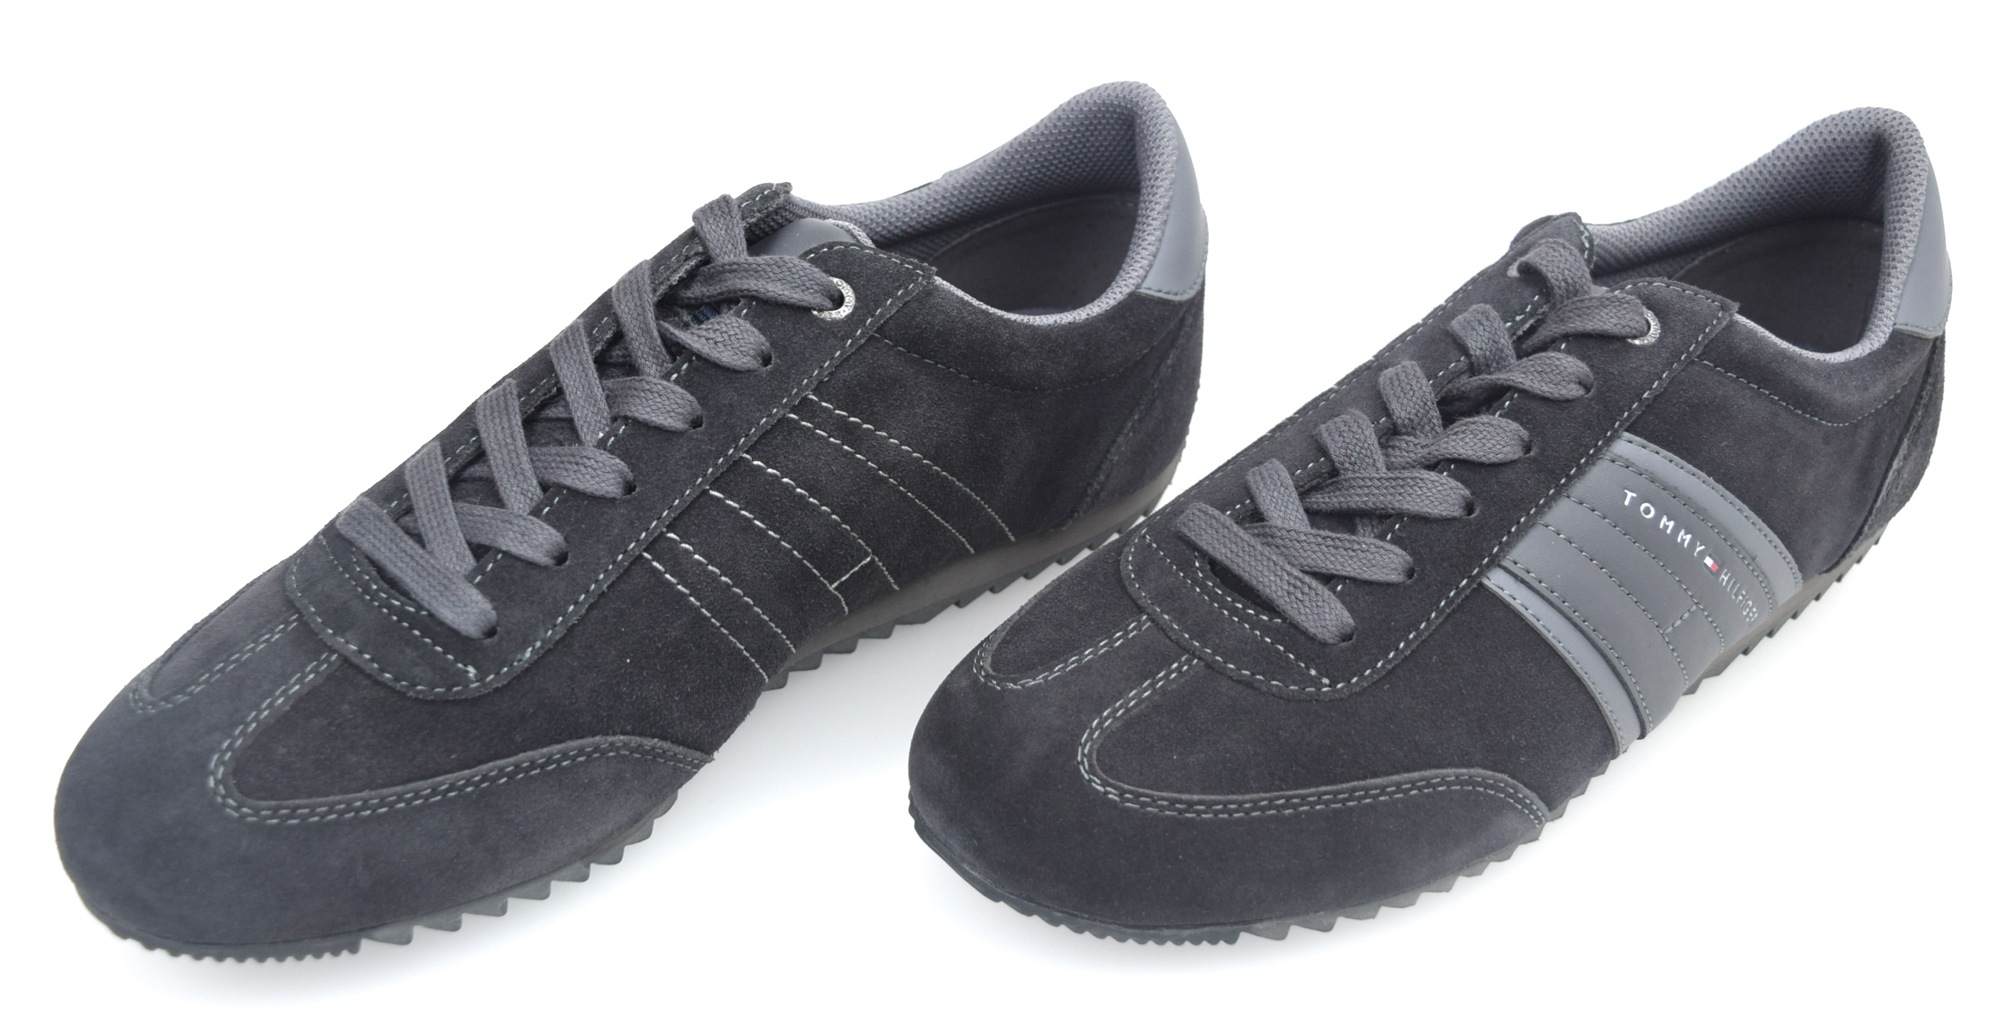 068a8544 TOMMY HILFIGER MAN SNEAKER SHOES CASUAL FREE TIME CODE FM56819603 ...